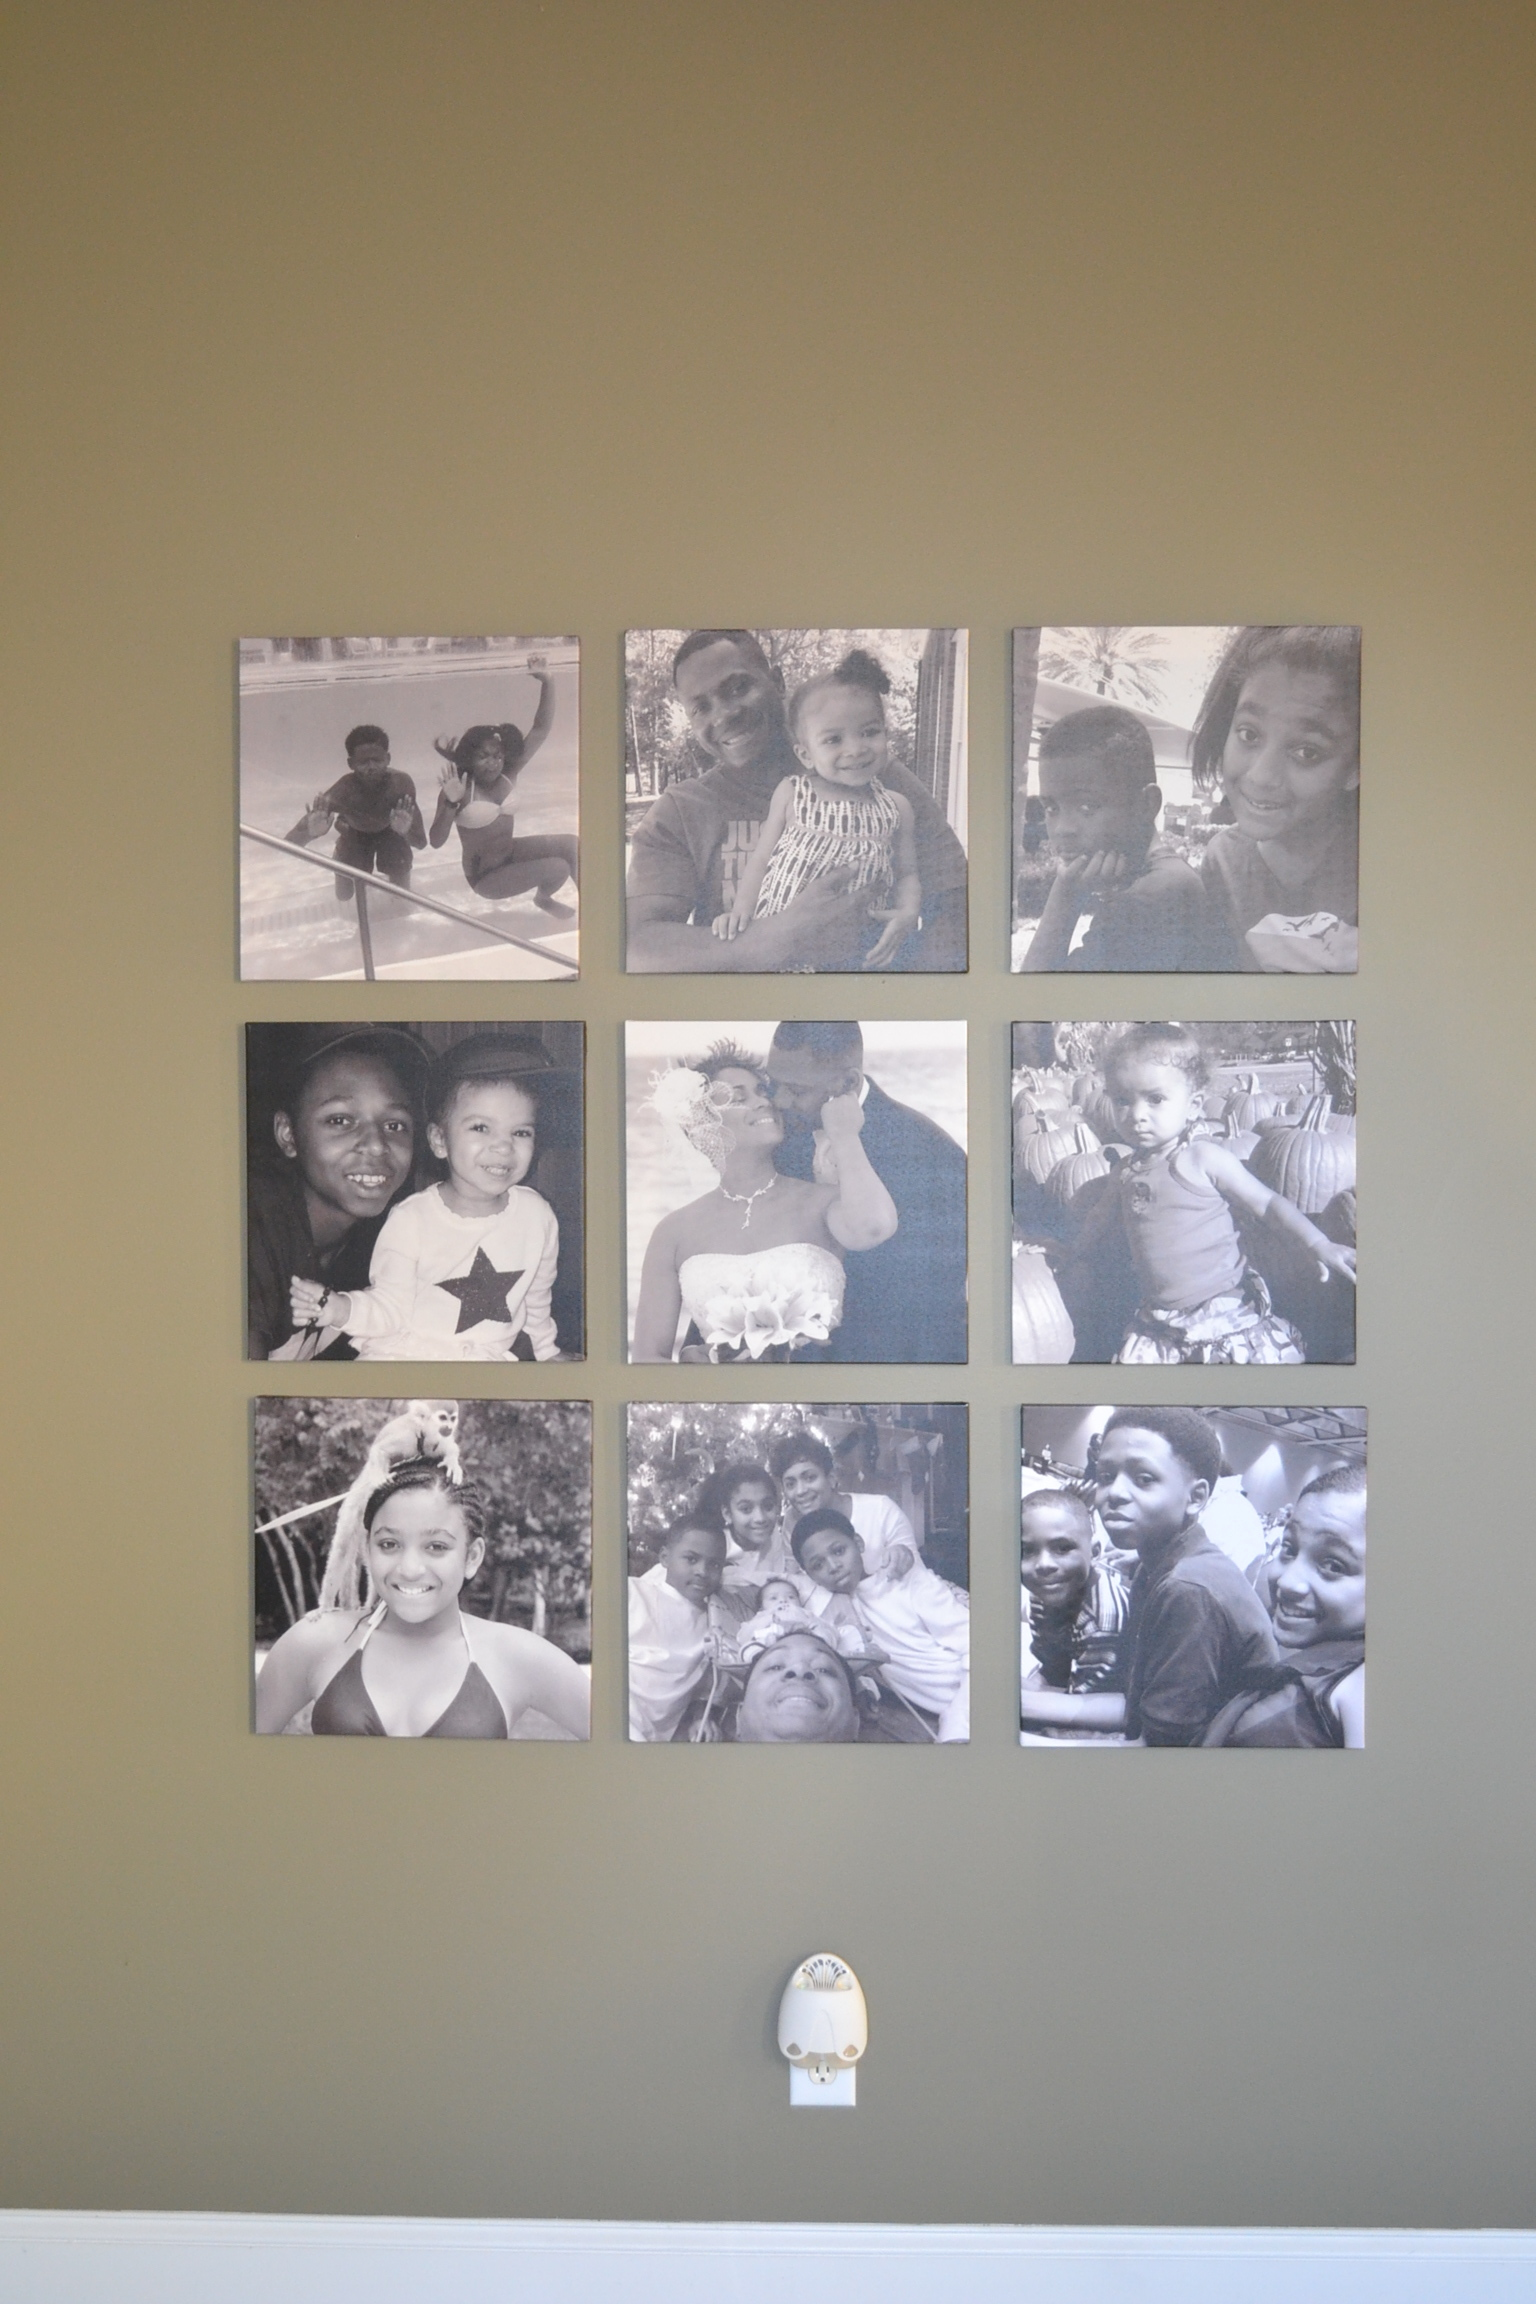 Family collage beautifally display in black and white canvas prints.